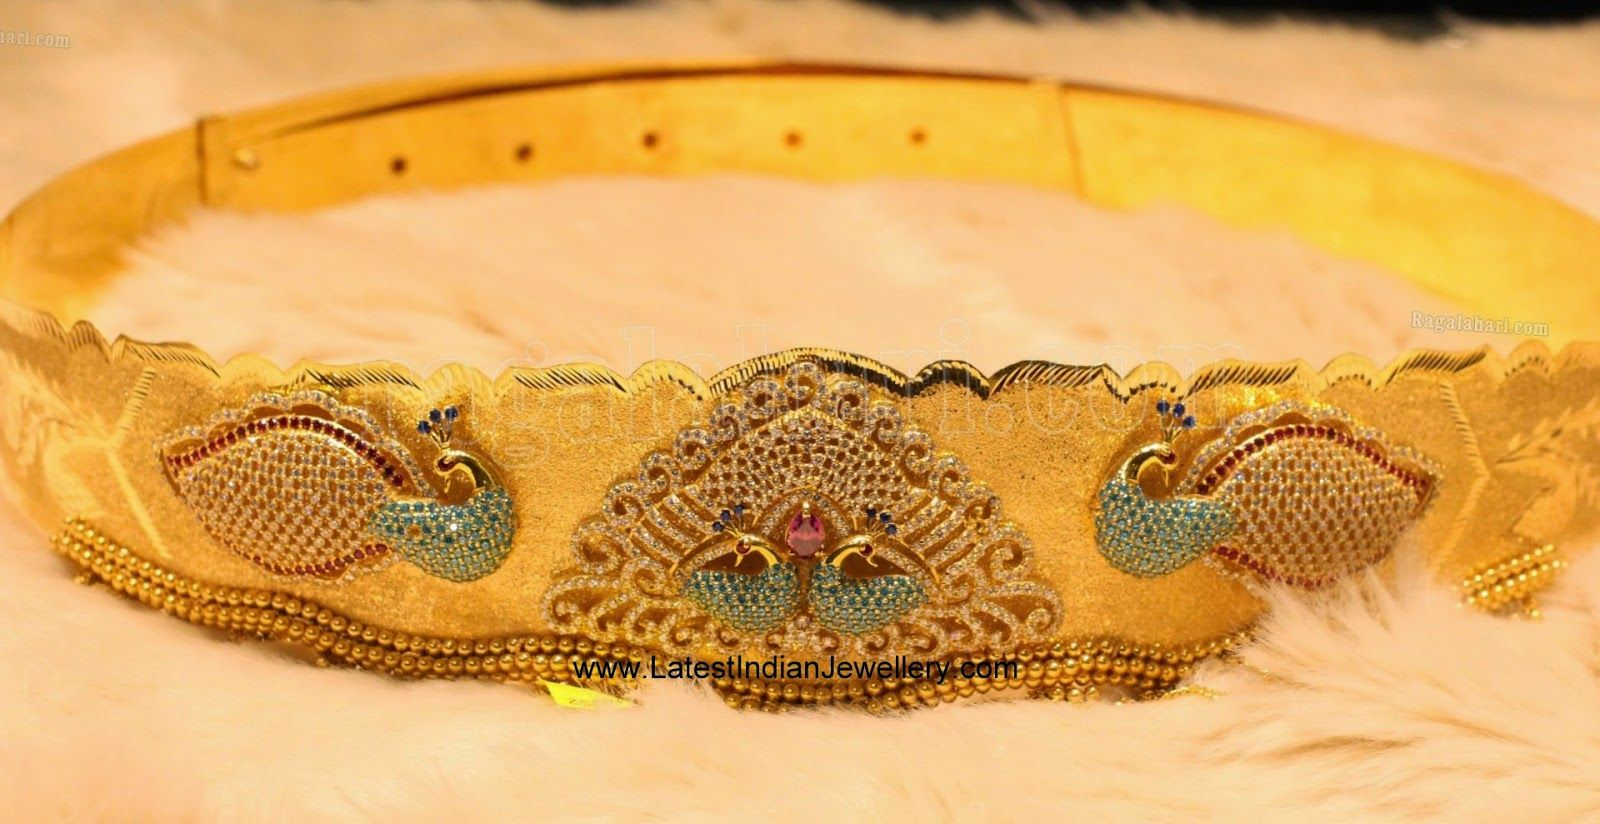 Gold vaddanam oddiyanam kammarpatta waisbelt designs south indian - Peacock Design Gold Vaddanam